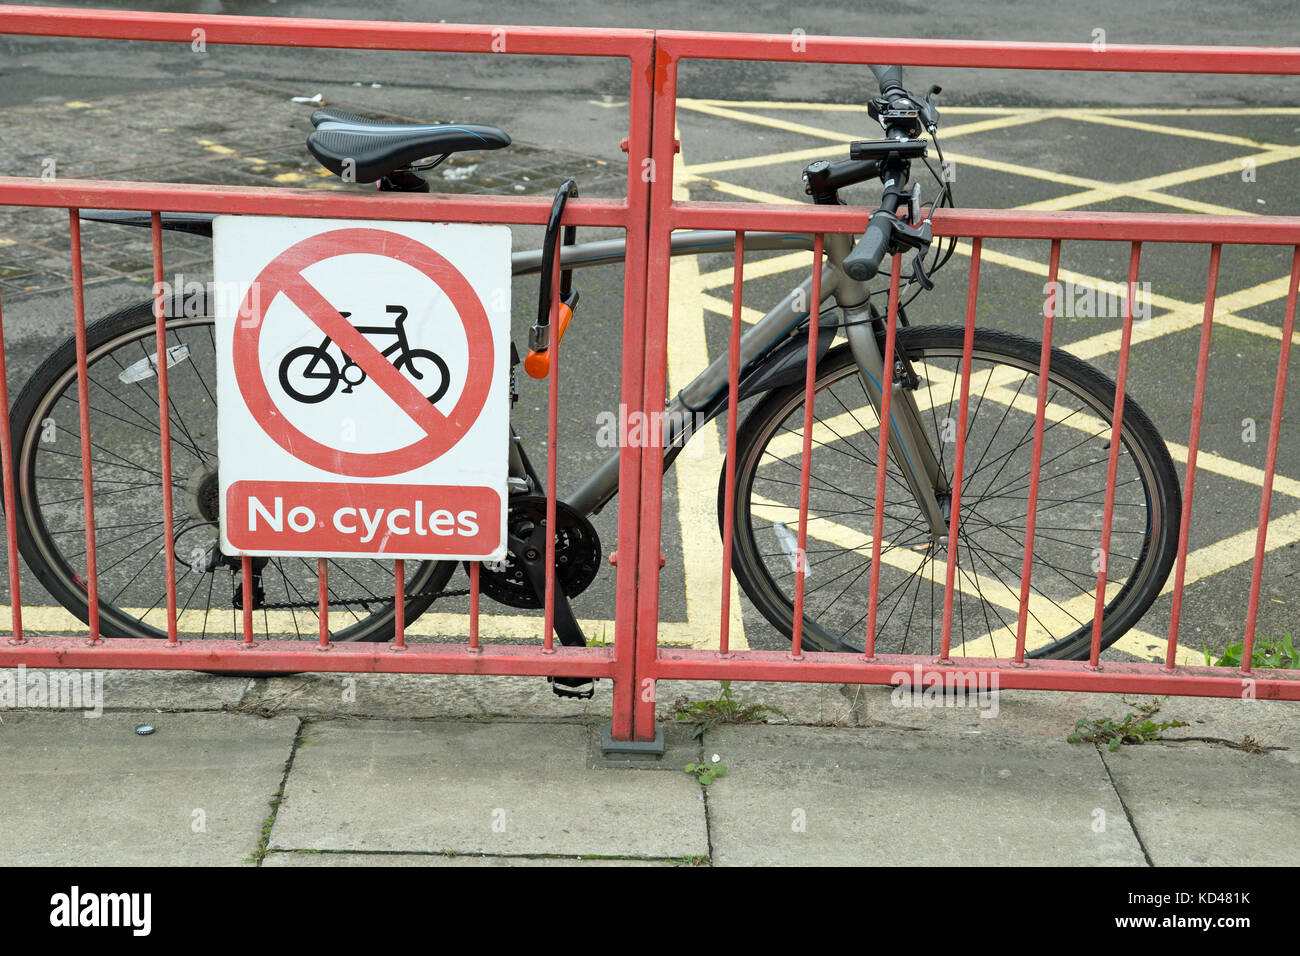 Bike parked behind a 'No Cycles'sign. - Stock Image